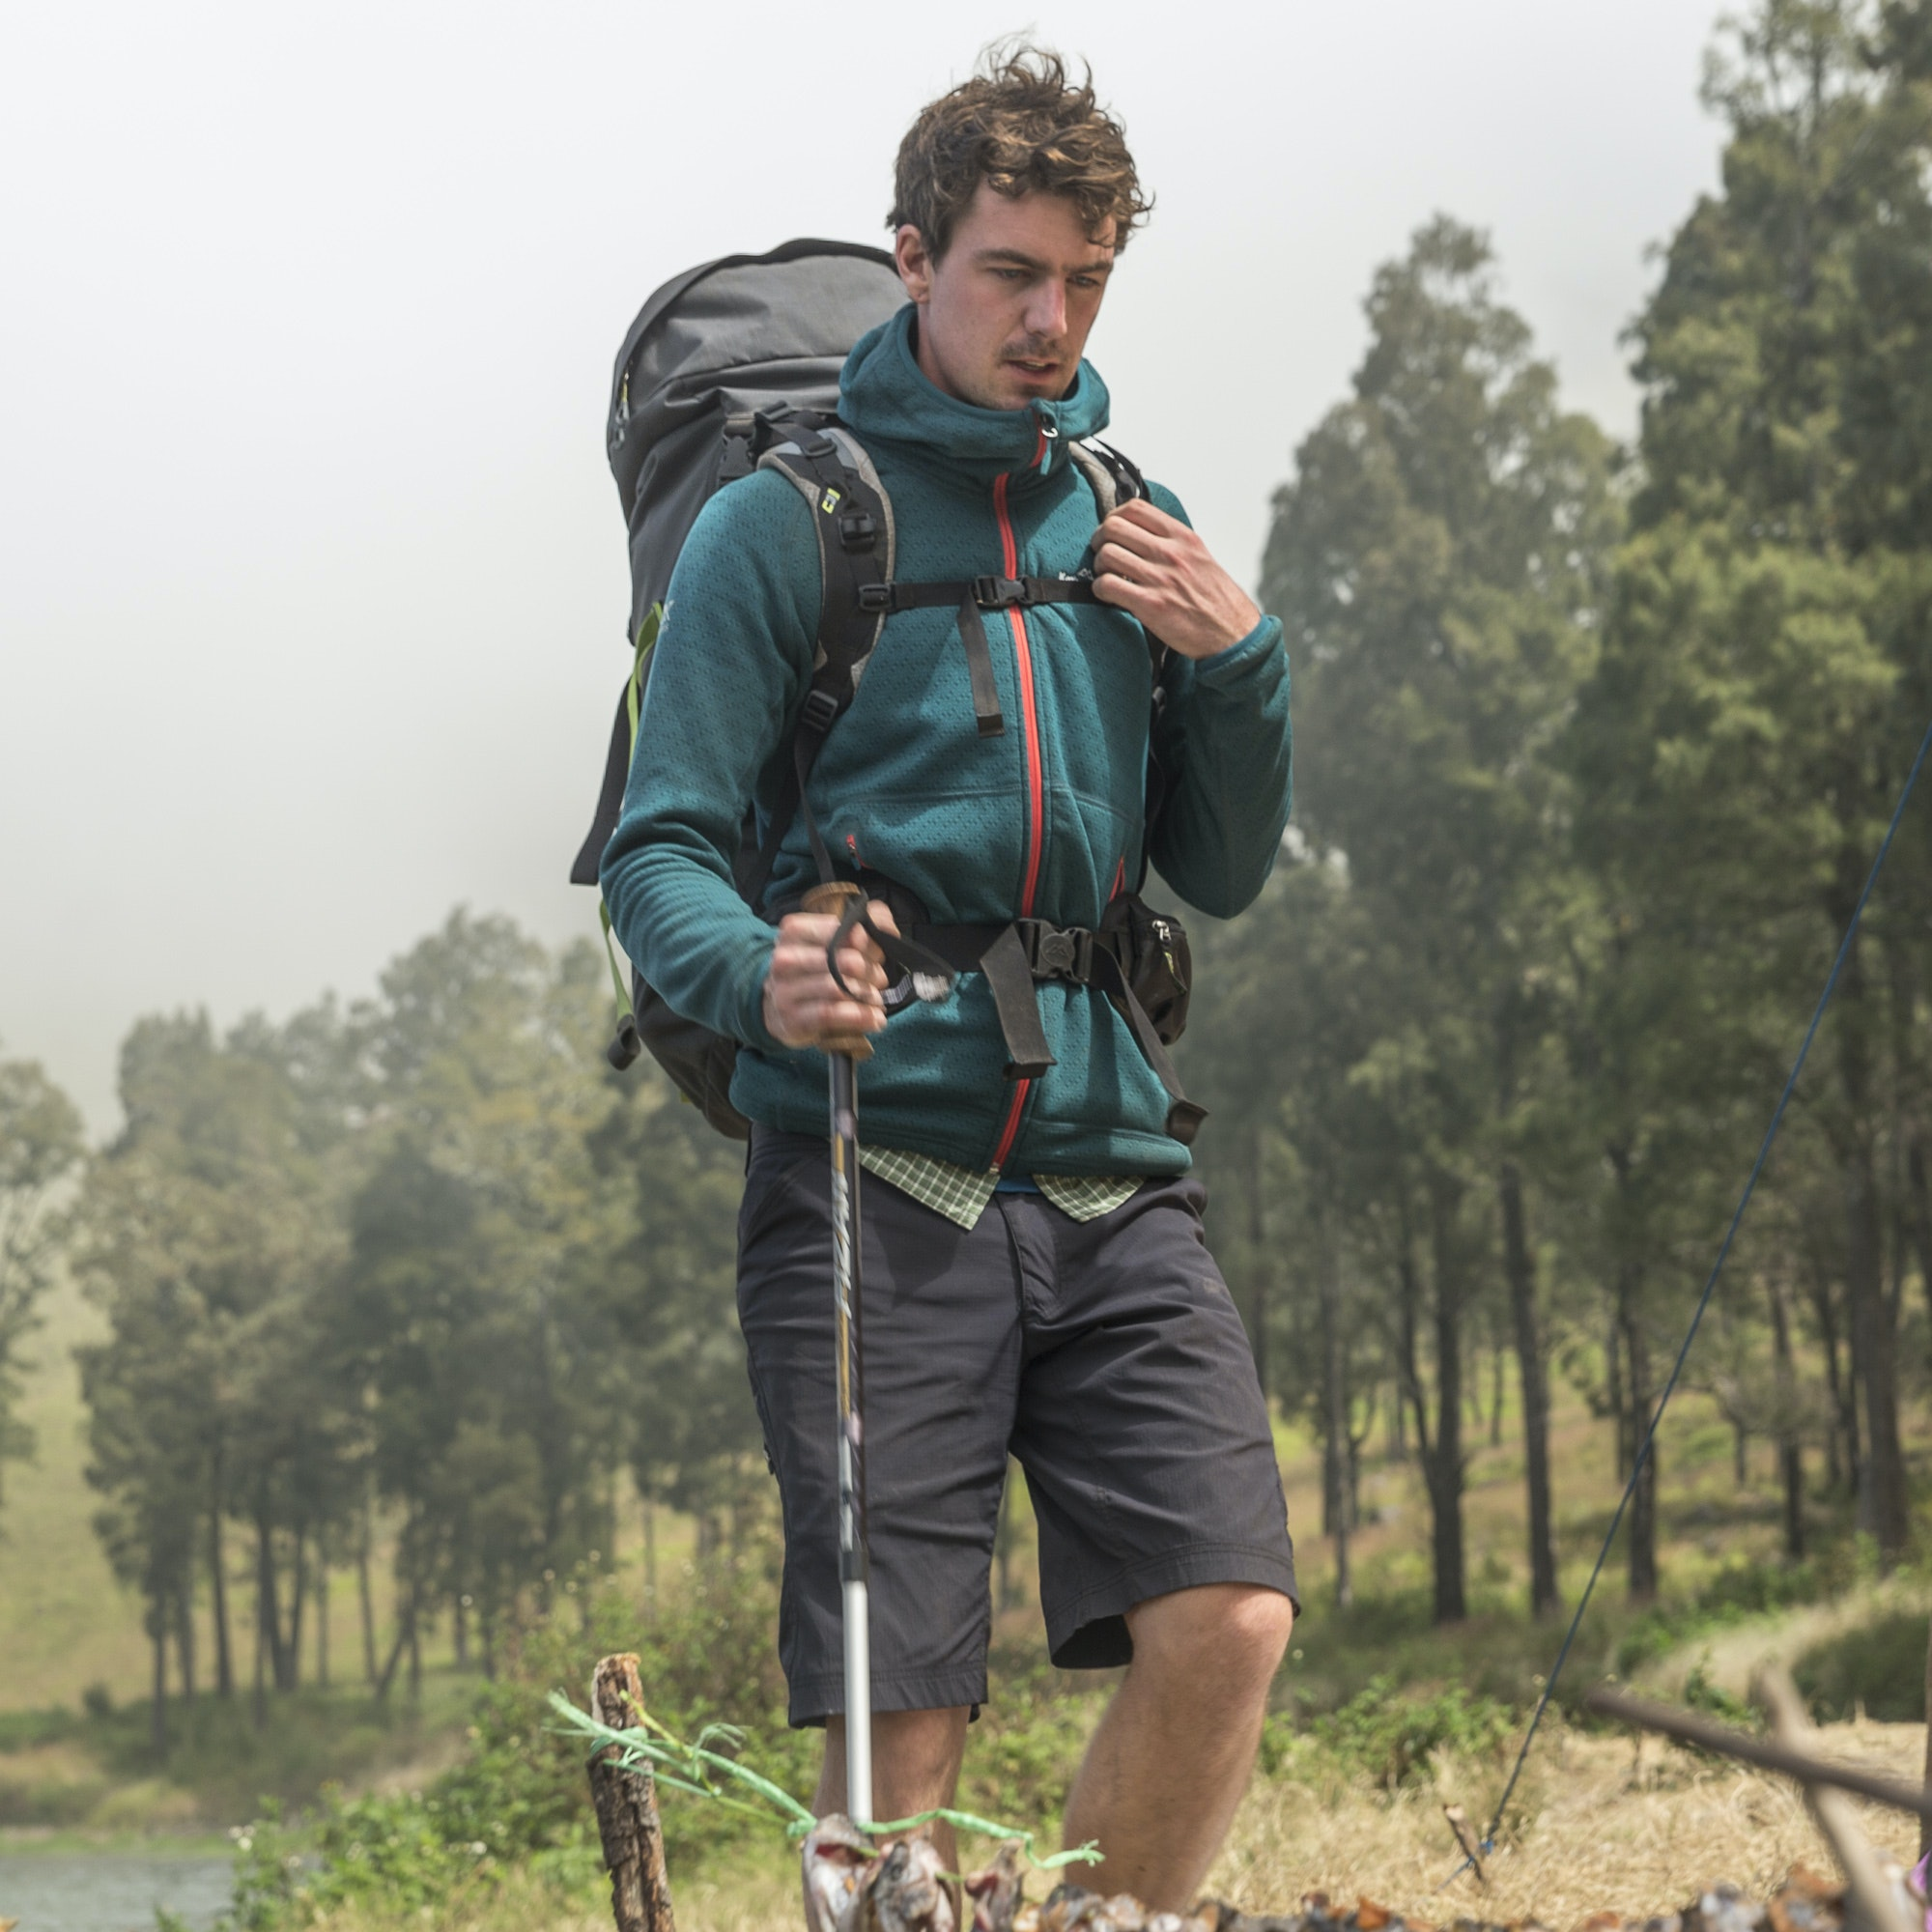 thumbnail 11 - NEW-Kathmandu-Aklo-Men-039-s-Walking-Hiking-Travel-Shorts-Pants-UPF-50-Protection